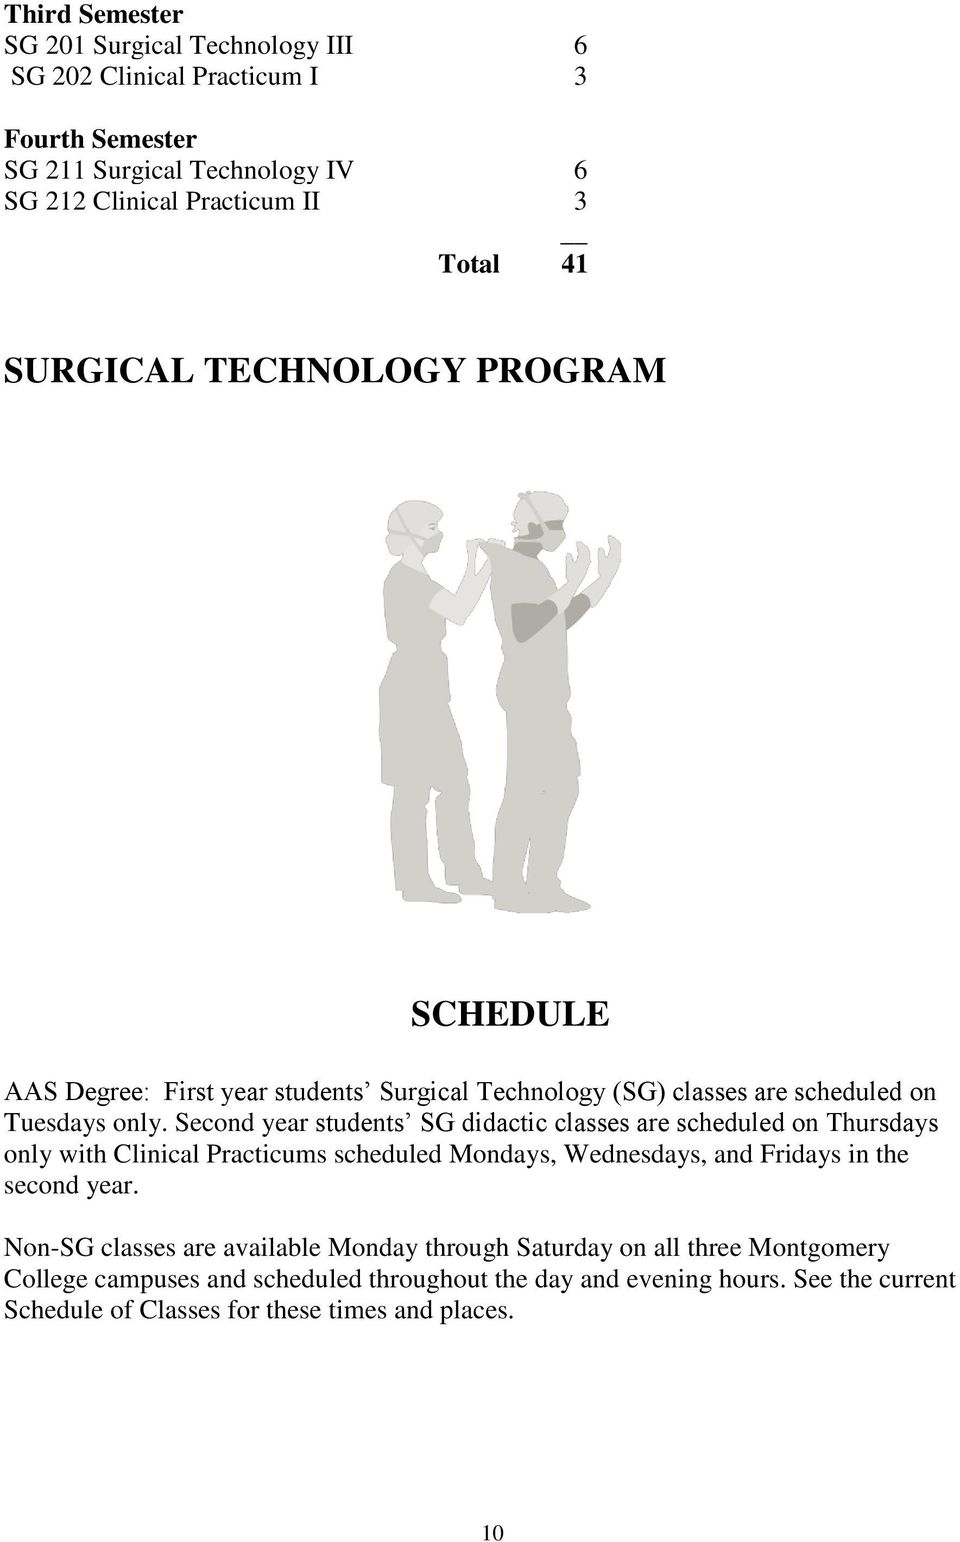 Second year students SG didactic classes are scheduled on Thursdays only with Clinical Practicums scheduled Mondays, Wednesdays, and Fridays in the second year.